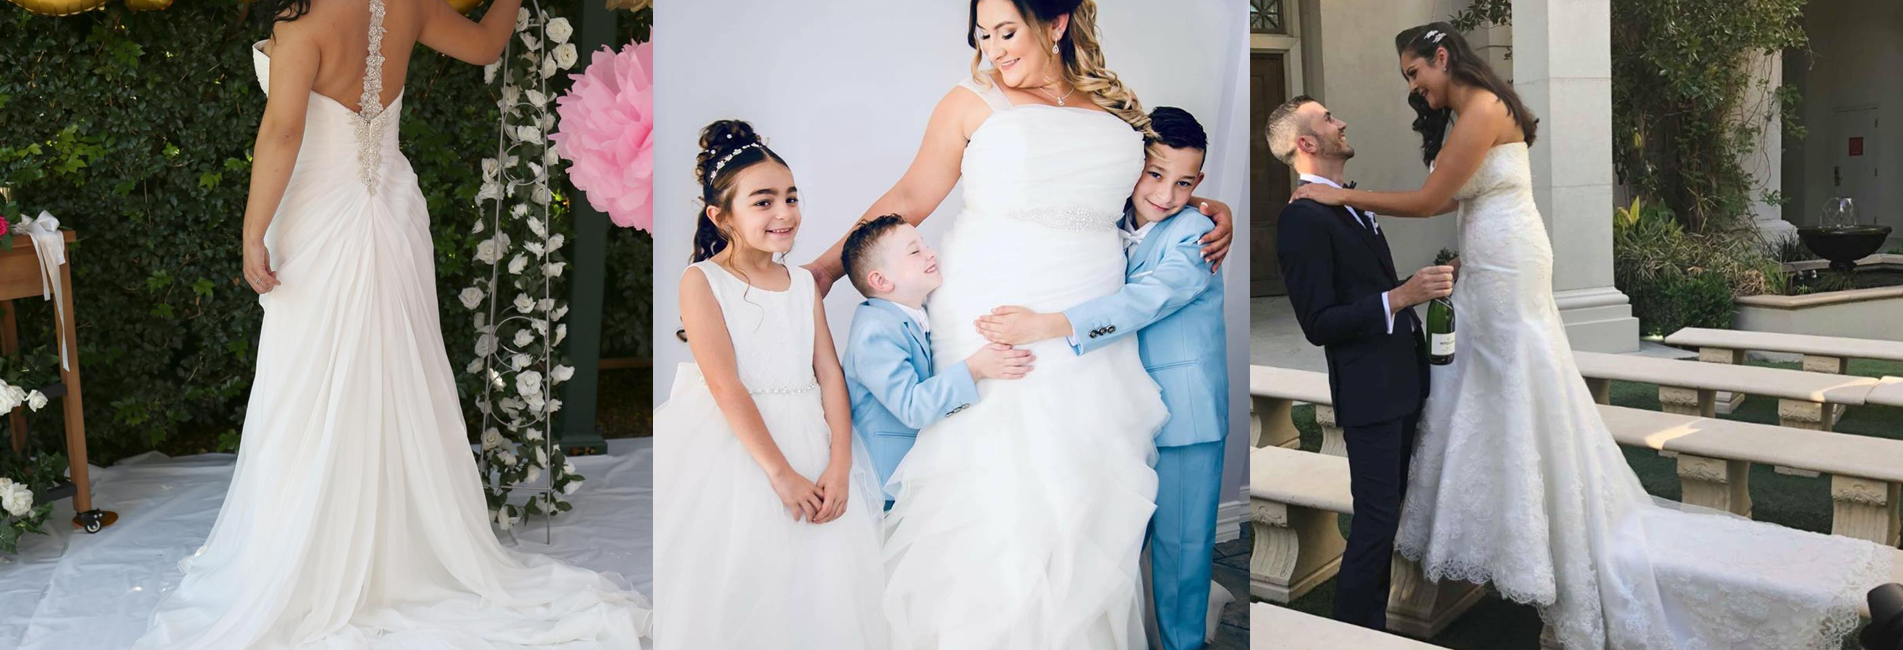 Wedding Dresses Parramatta, Wedding Dress Alterations Sydney, Second Hand Wedding Dresses Doonside, Bridal Veils Blacktown, Plus Size Wedding Dresses Castle Hill, Clothing Alterations Seven Hills